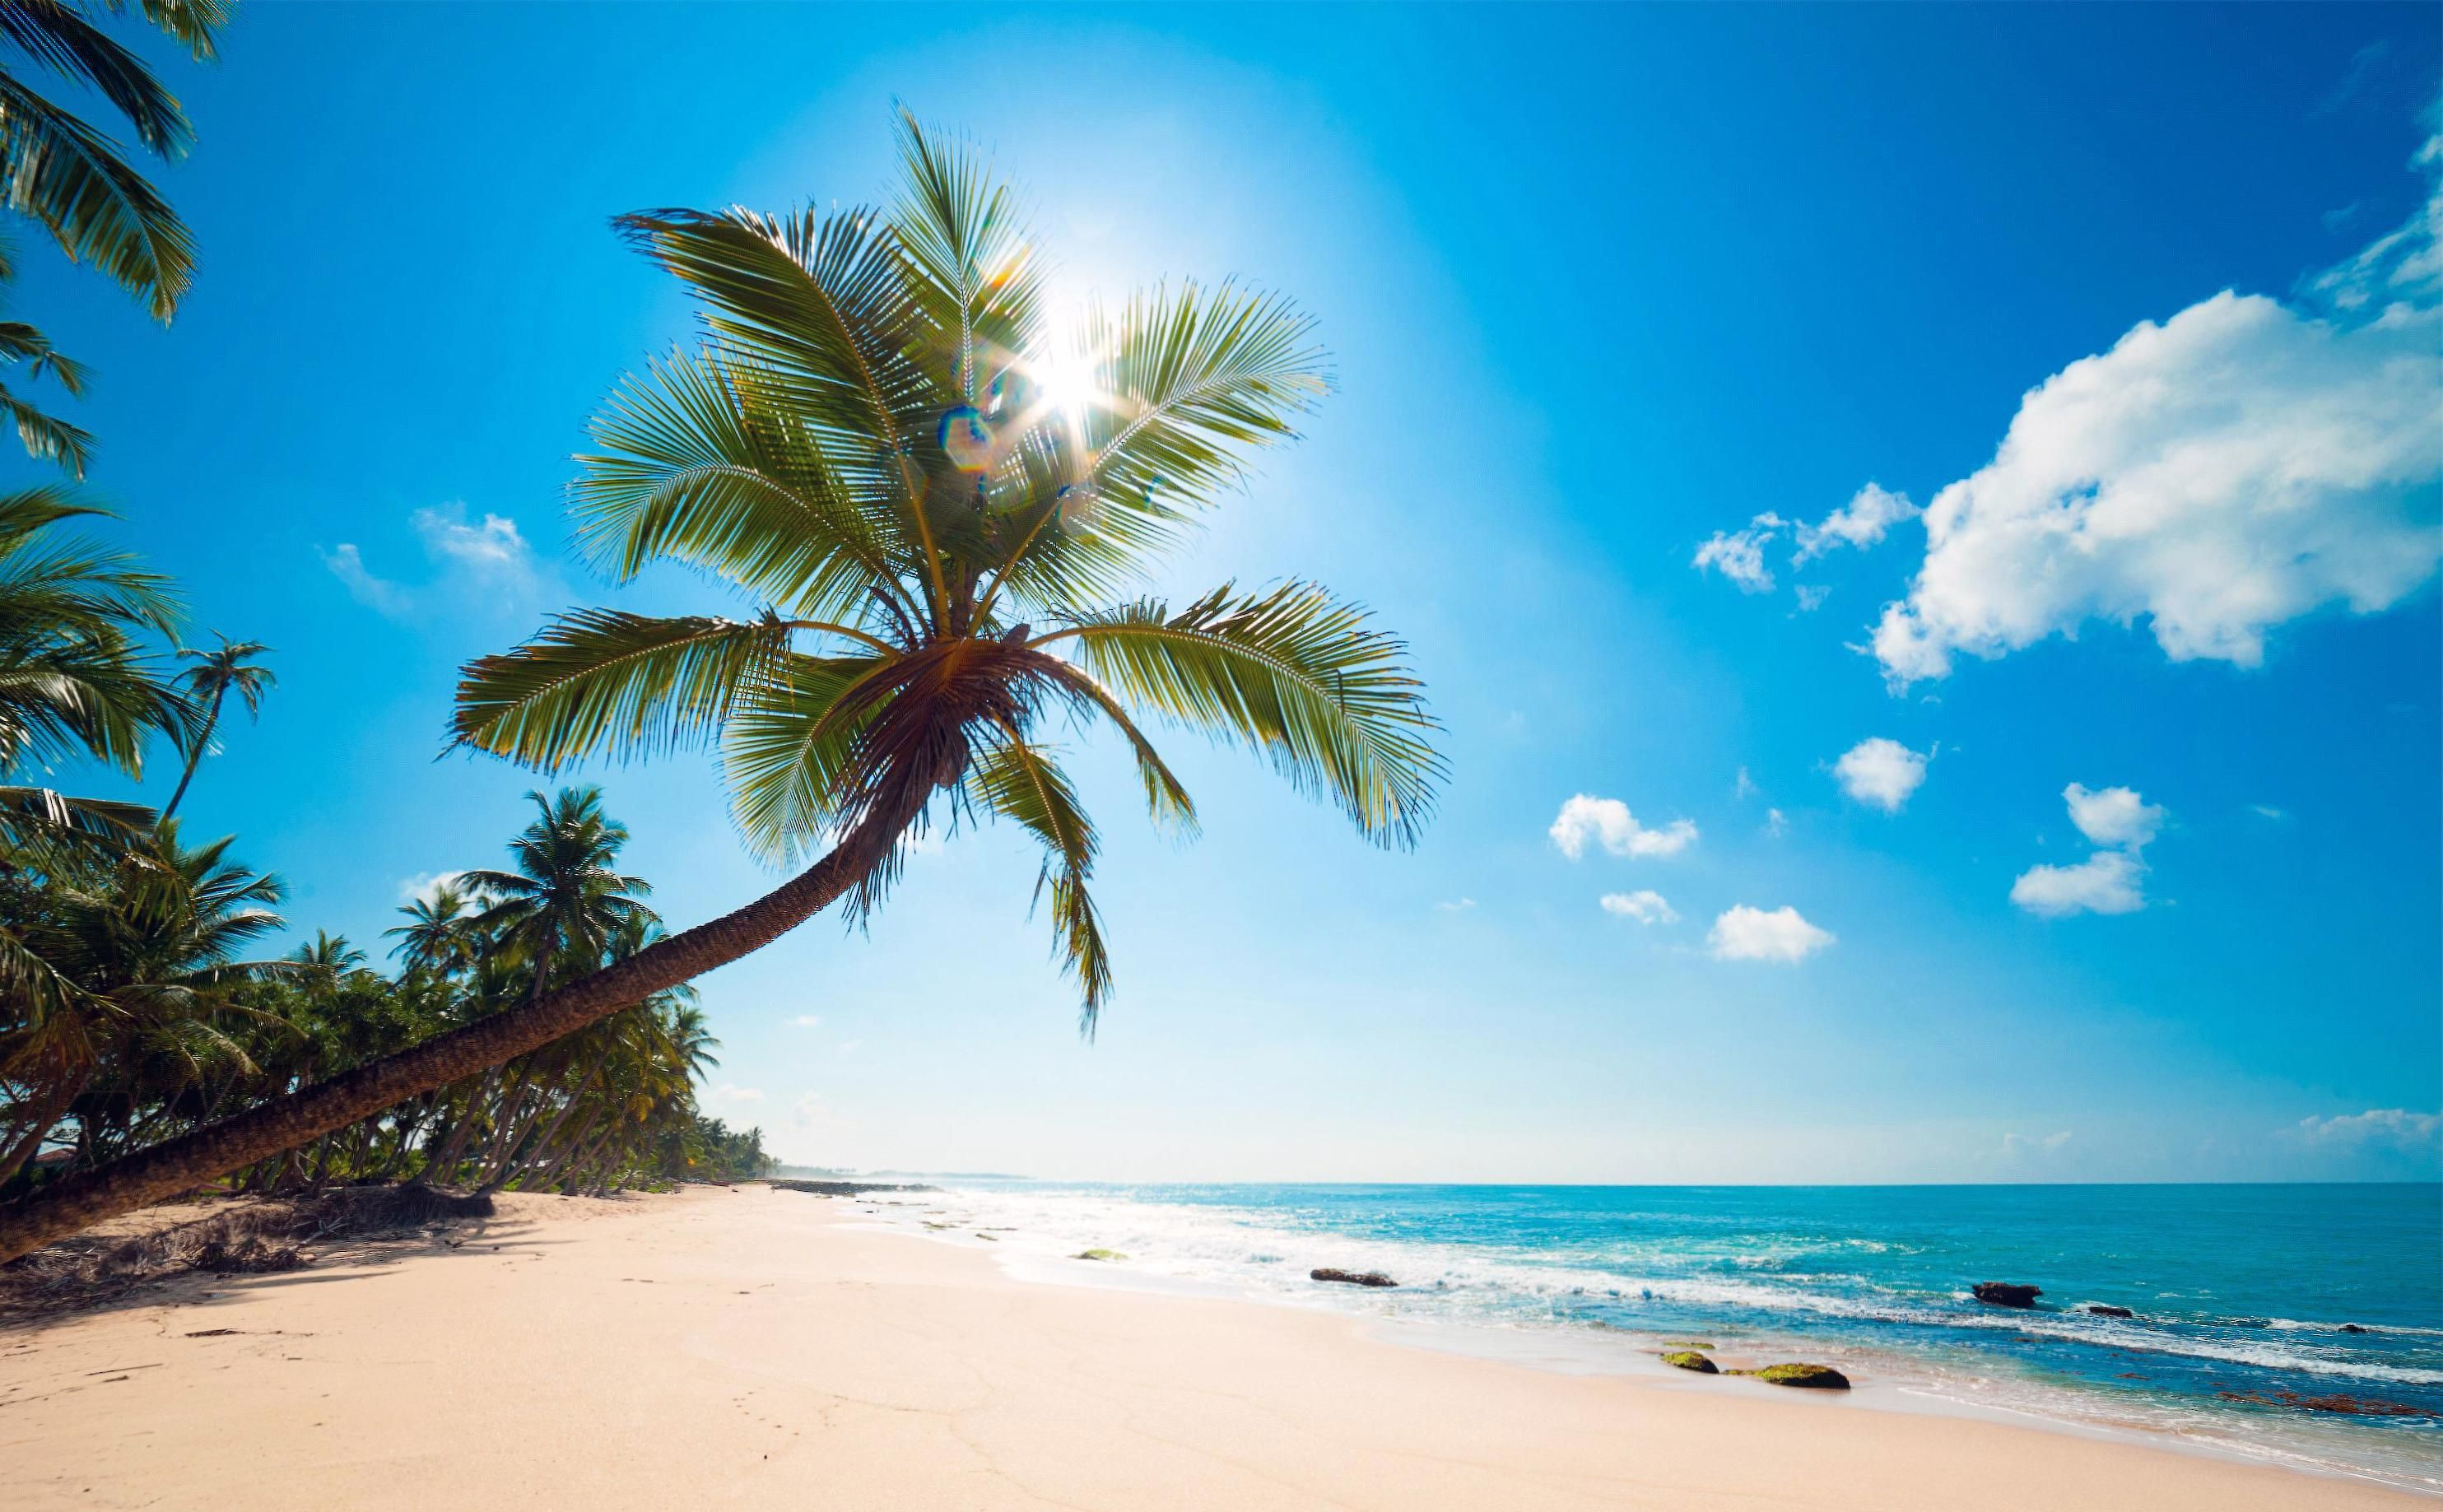 Sunny Beach Hd Wallpapers Hd Wallpapers Fit Beach Wall Murals Beach Wallpaper Caribbean Beaches